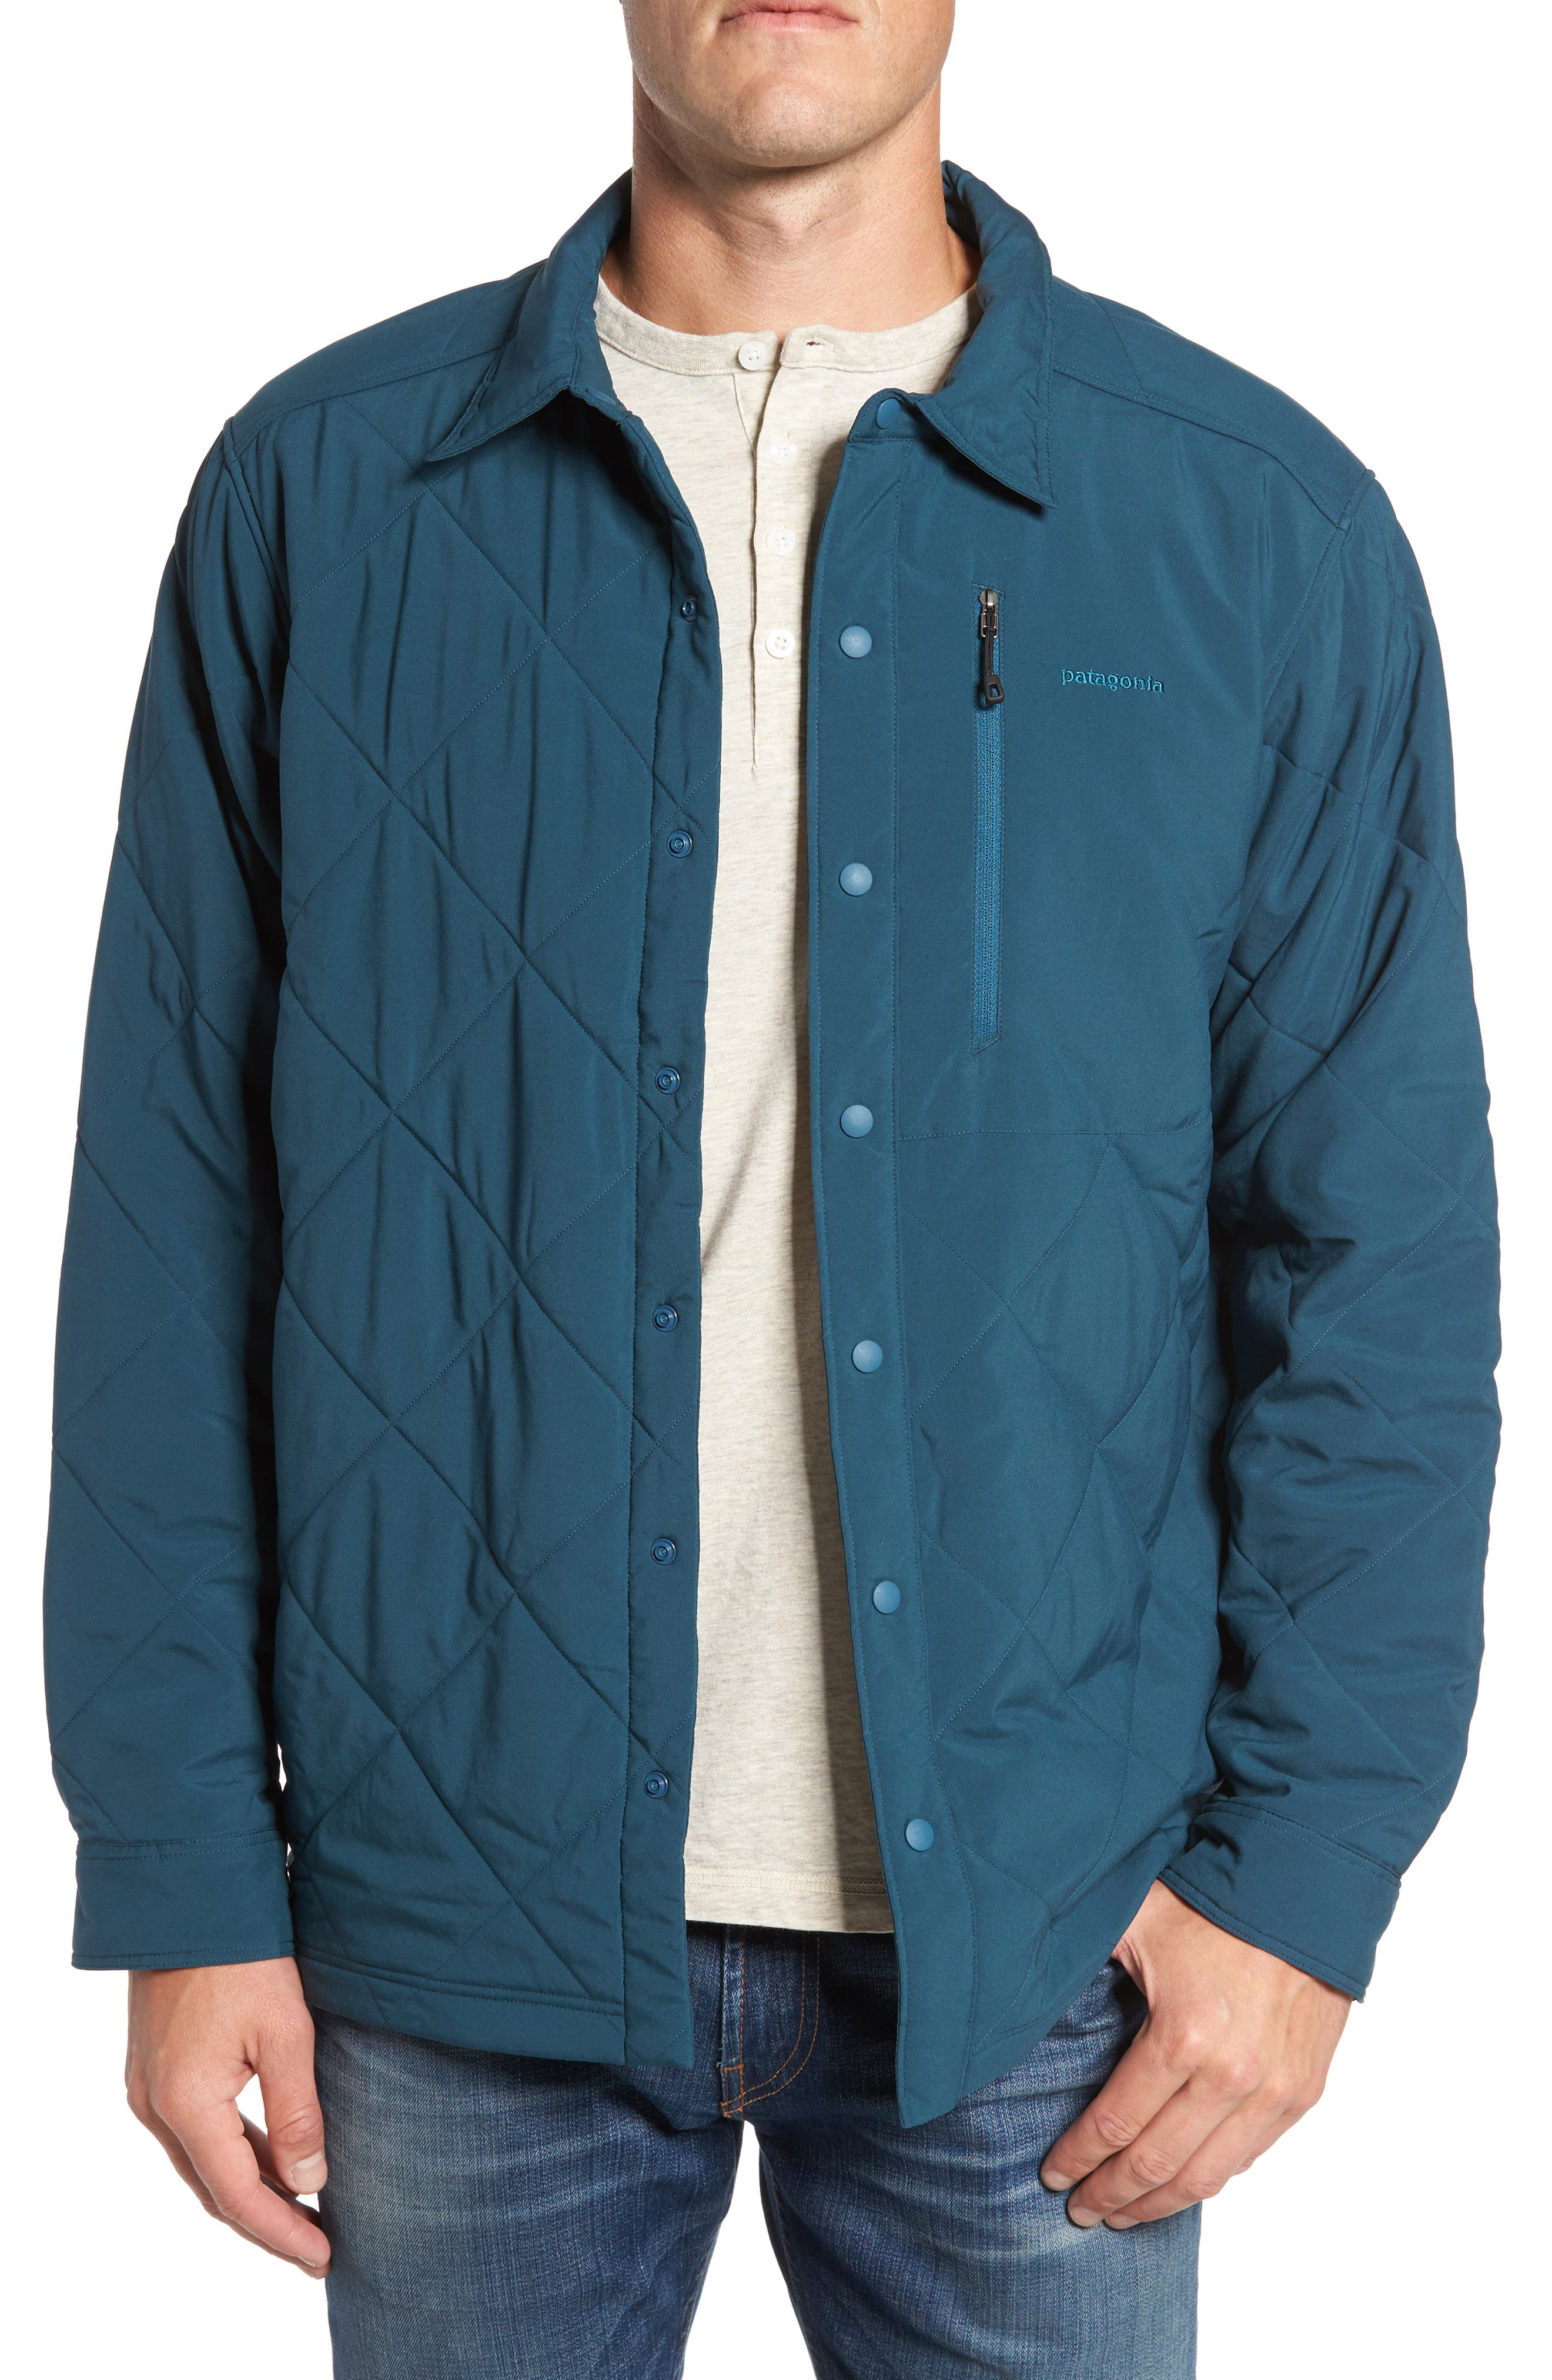 Alternate Image 1 Selected - Patagonia Tough Puff Shirt Jacket